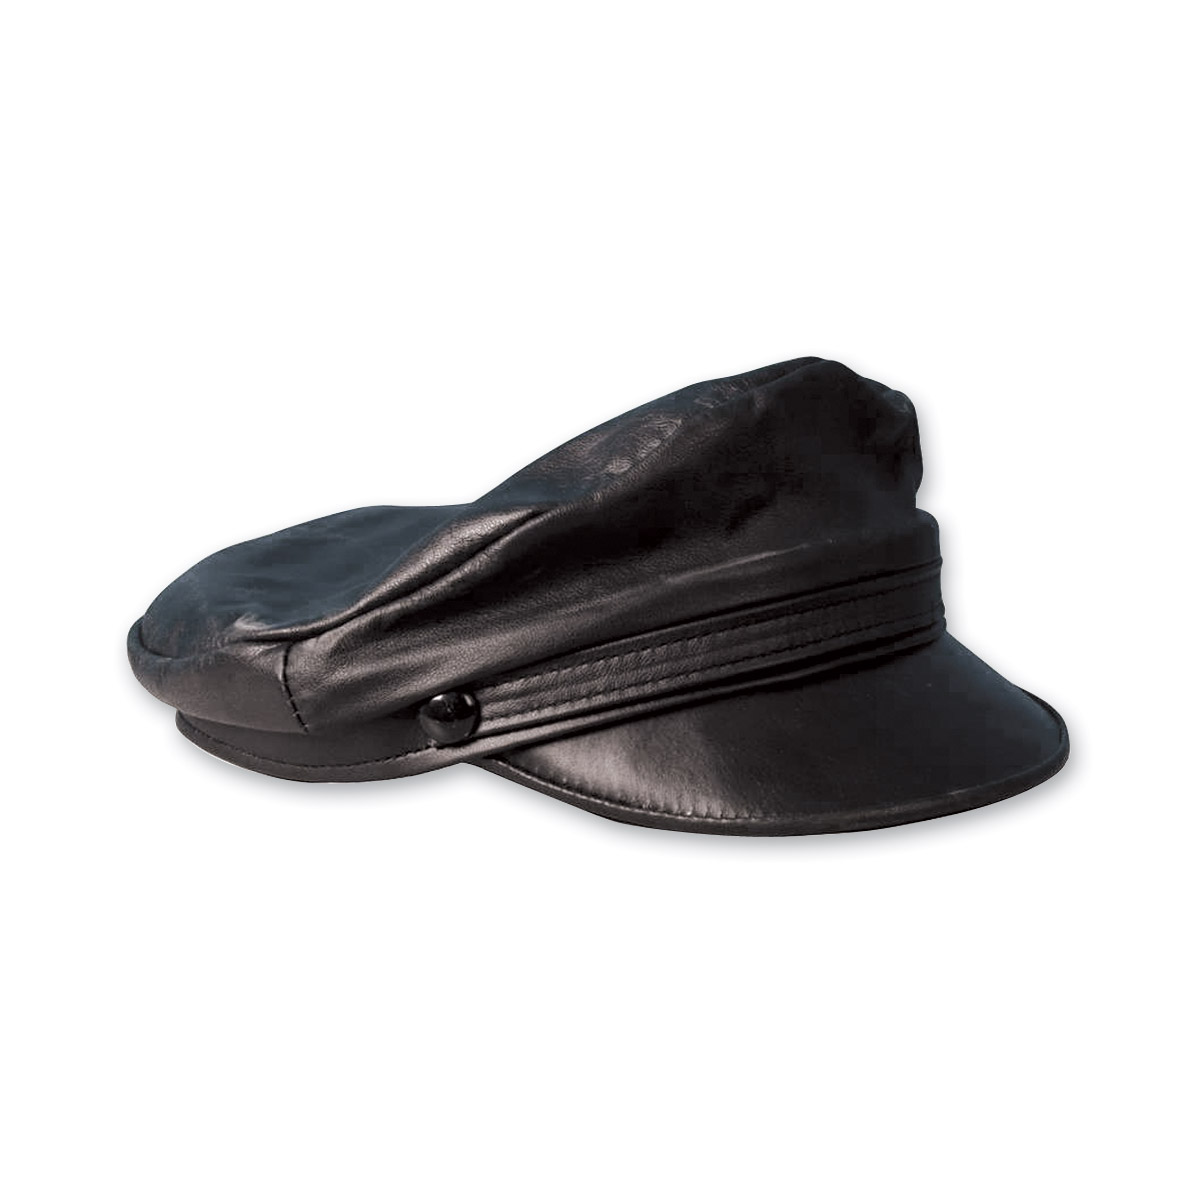 GoodSports Brando Leather Flat Top Cap